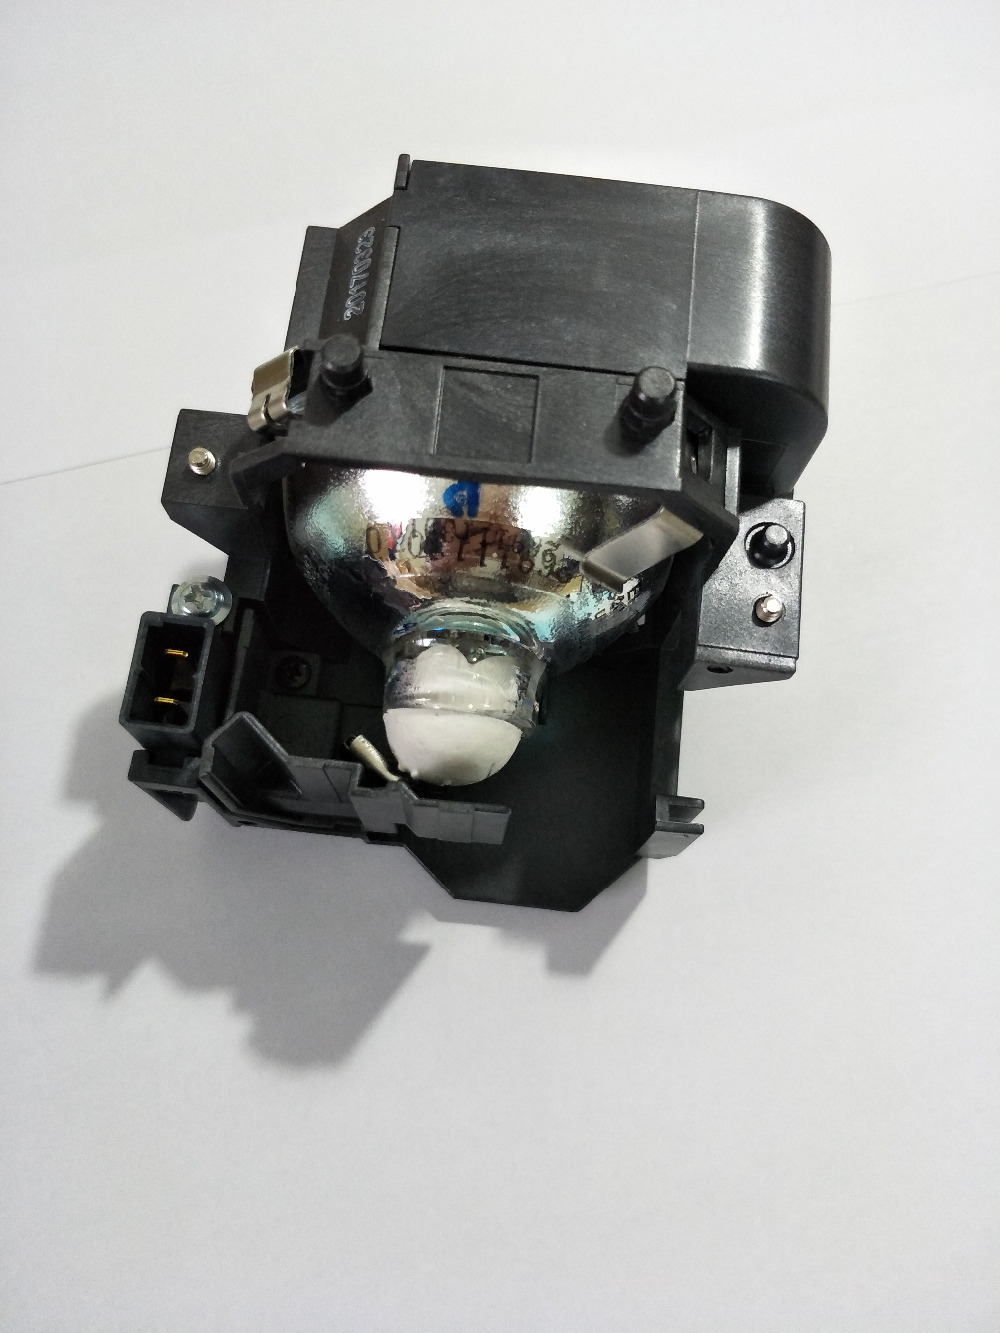 ForEpson OEM(Original Bulb and Generic Housing) ELPLP50 / V13H010L50 RPTV Lamp with Housing 1-Year Replacement Warranty original xl 5300 xl5300 f 9308 760 0 a1205438a replacement tv lamp with housing for sony tv and 1 year warranty